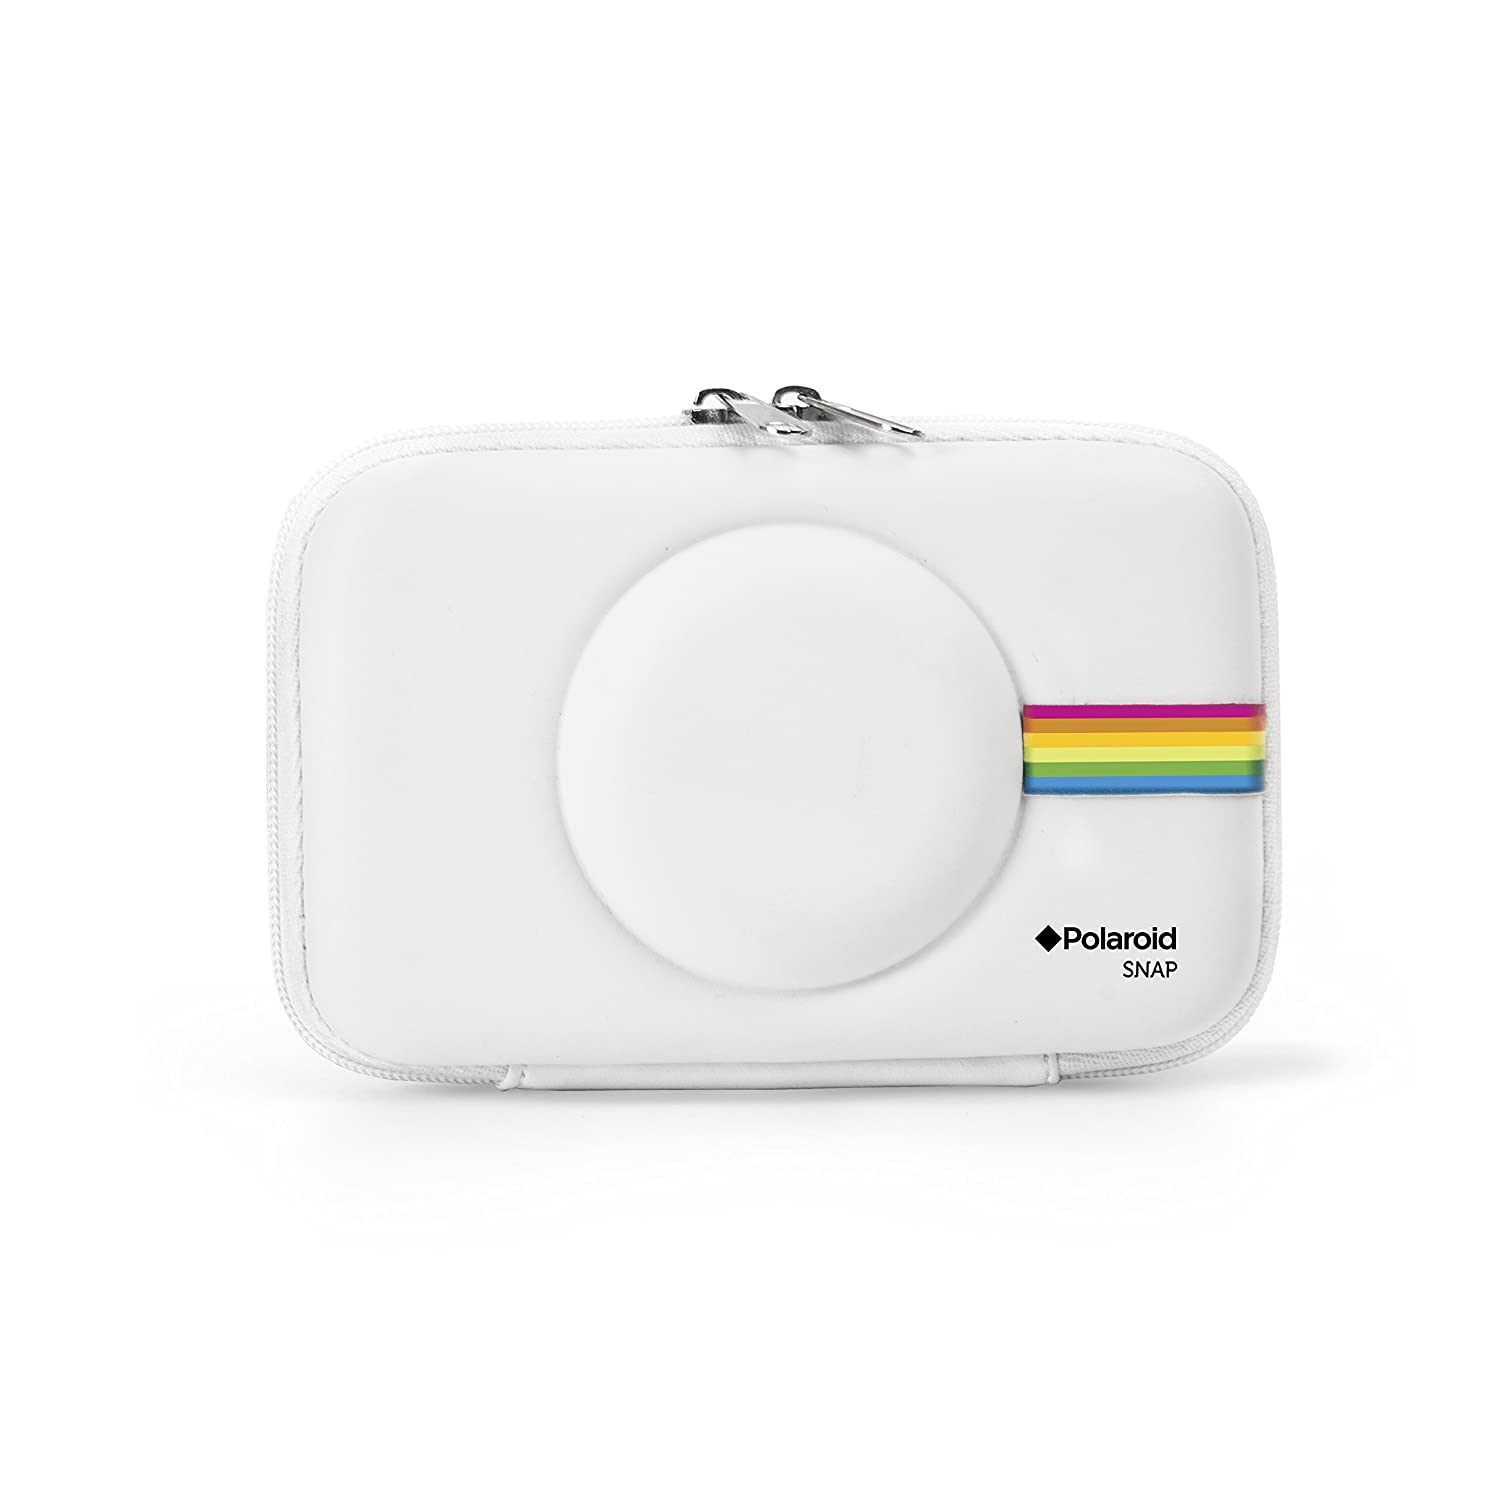 Polaroid Eva Case for Polaroid Snap Instant Print Digital Camera (White)